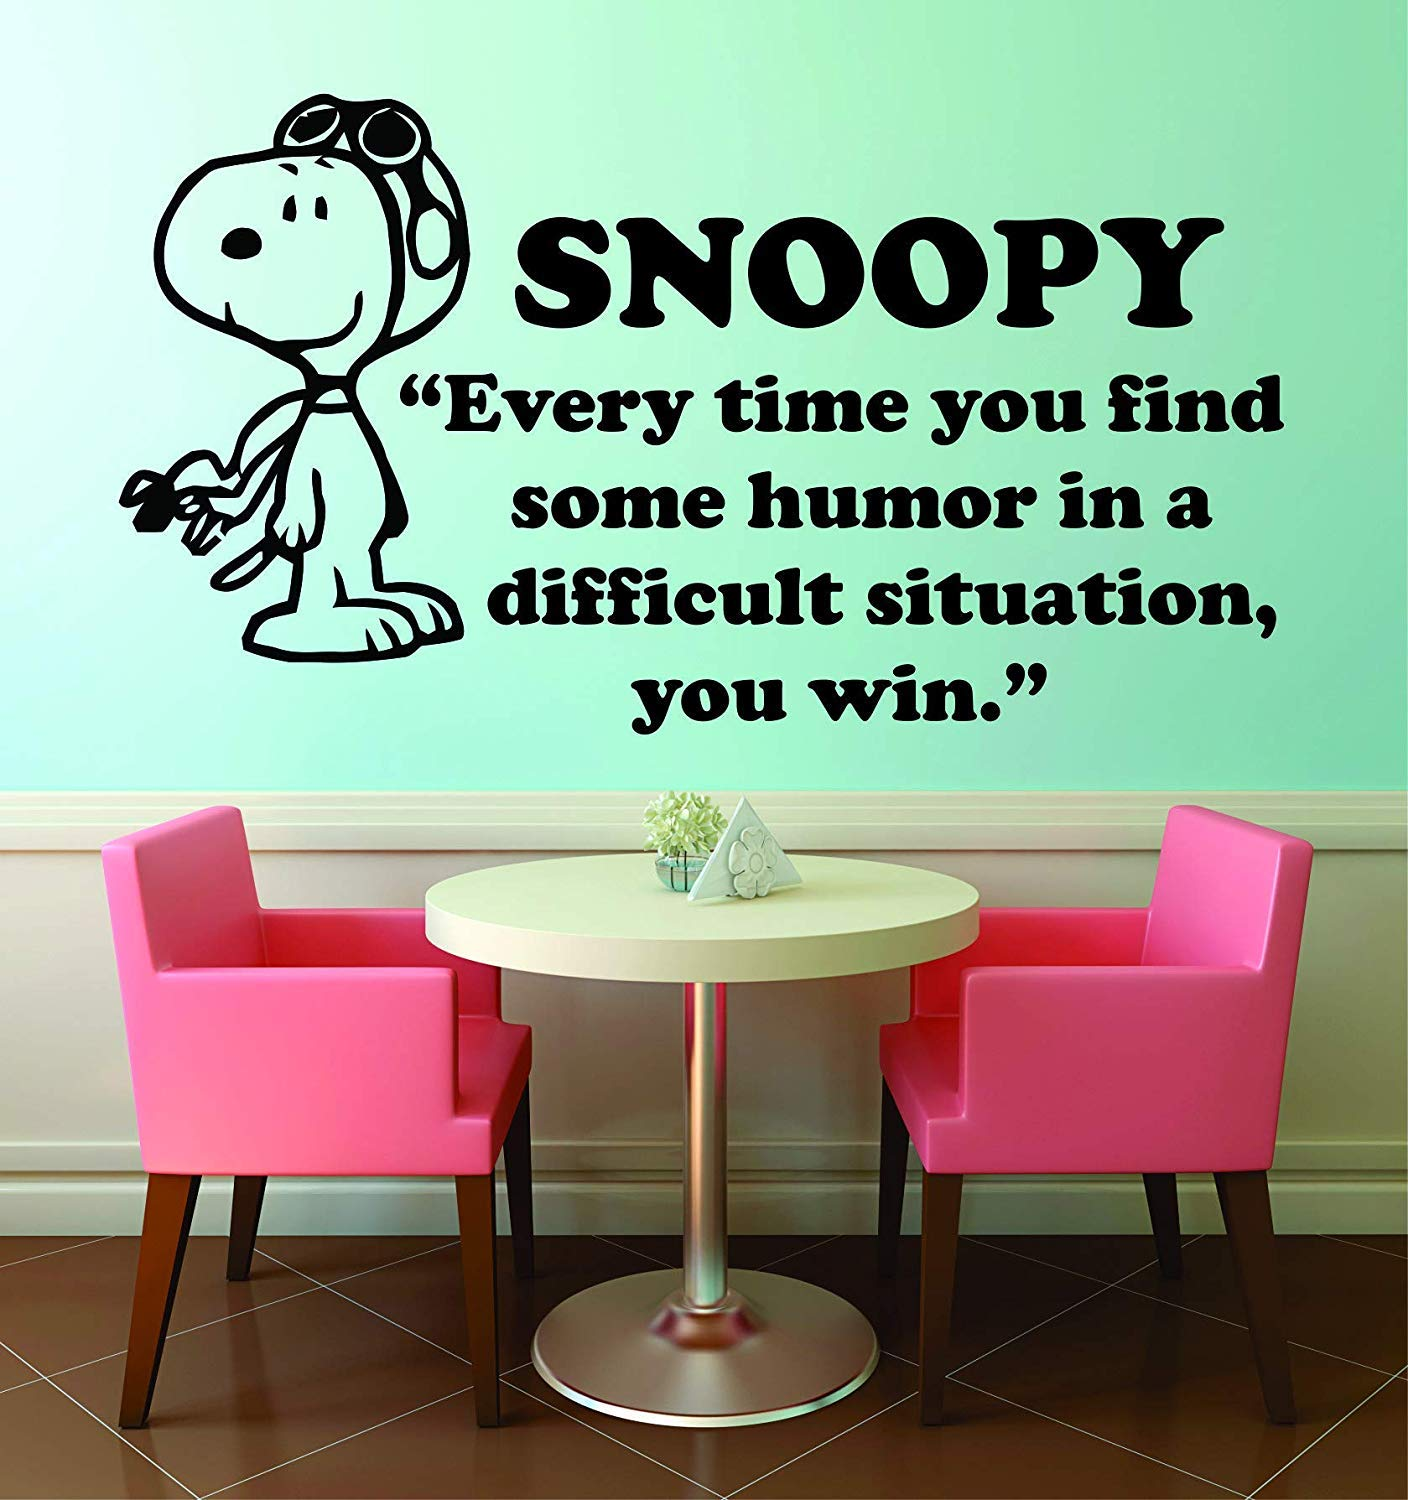 You Win Snoopy Popular Quote Peanuts Cartoon Quotes Wall Sticker Art Decal for Girls Boys Room Bedroom Nursery Kindergarten House Fun Home Decor Stickers Wall Art Vinyl Decoration Size (35x40 inch)